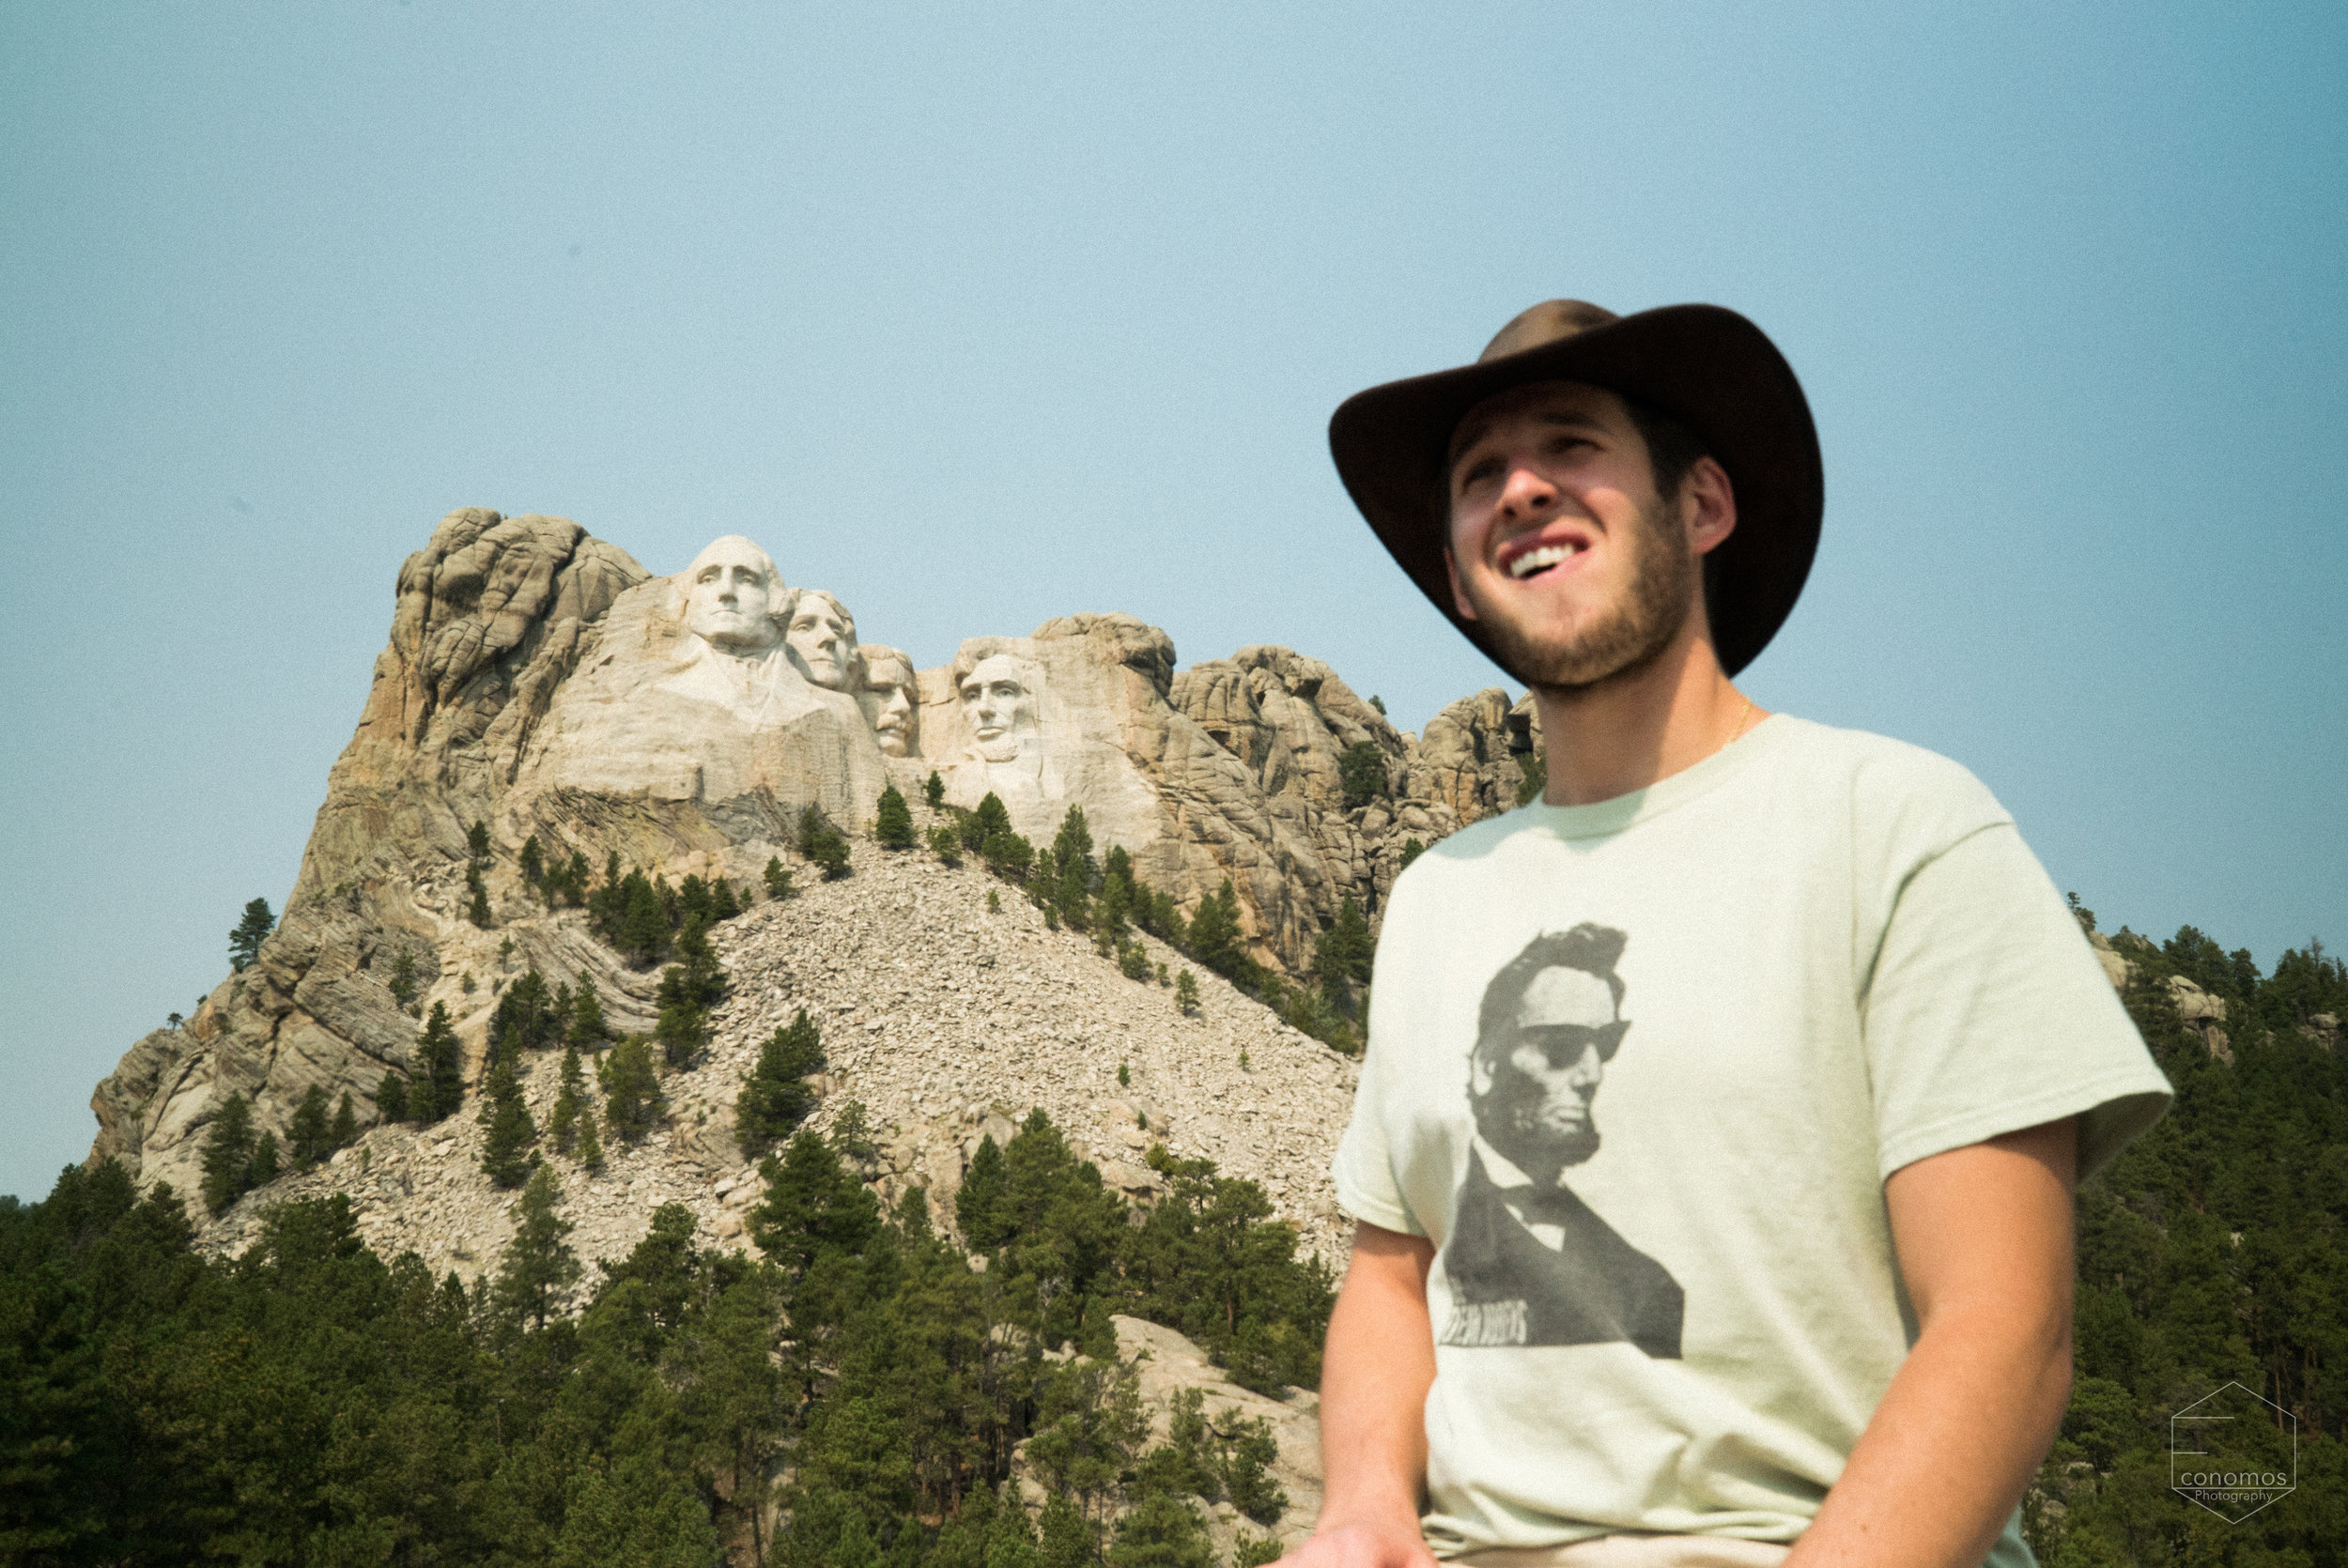 Lincoln on a mountain, his shirt, his heart